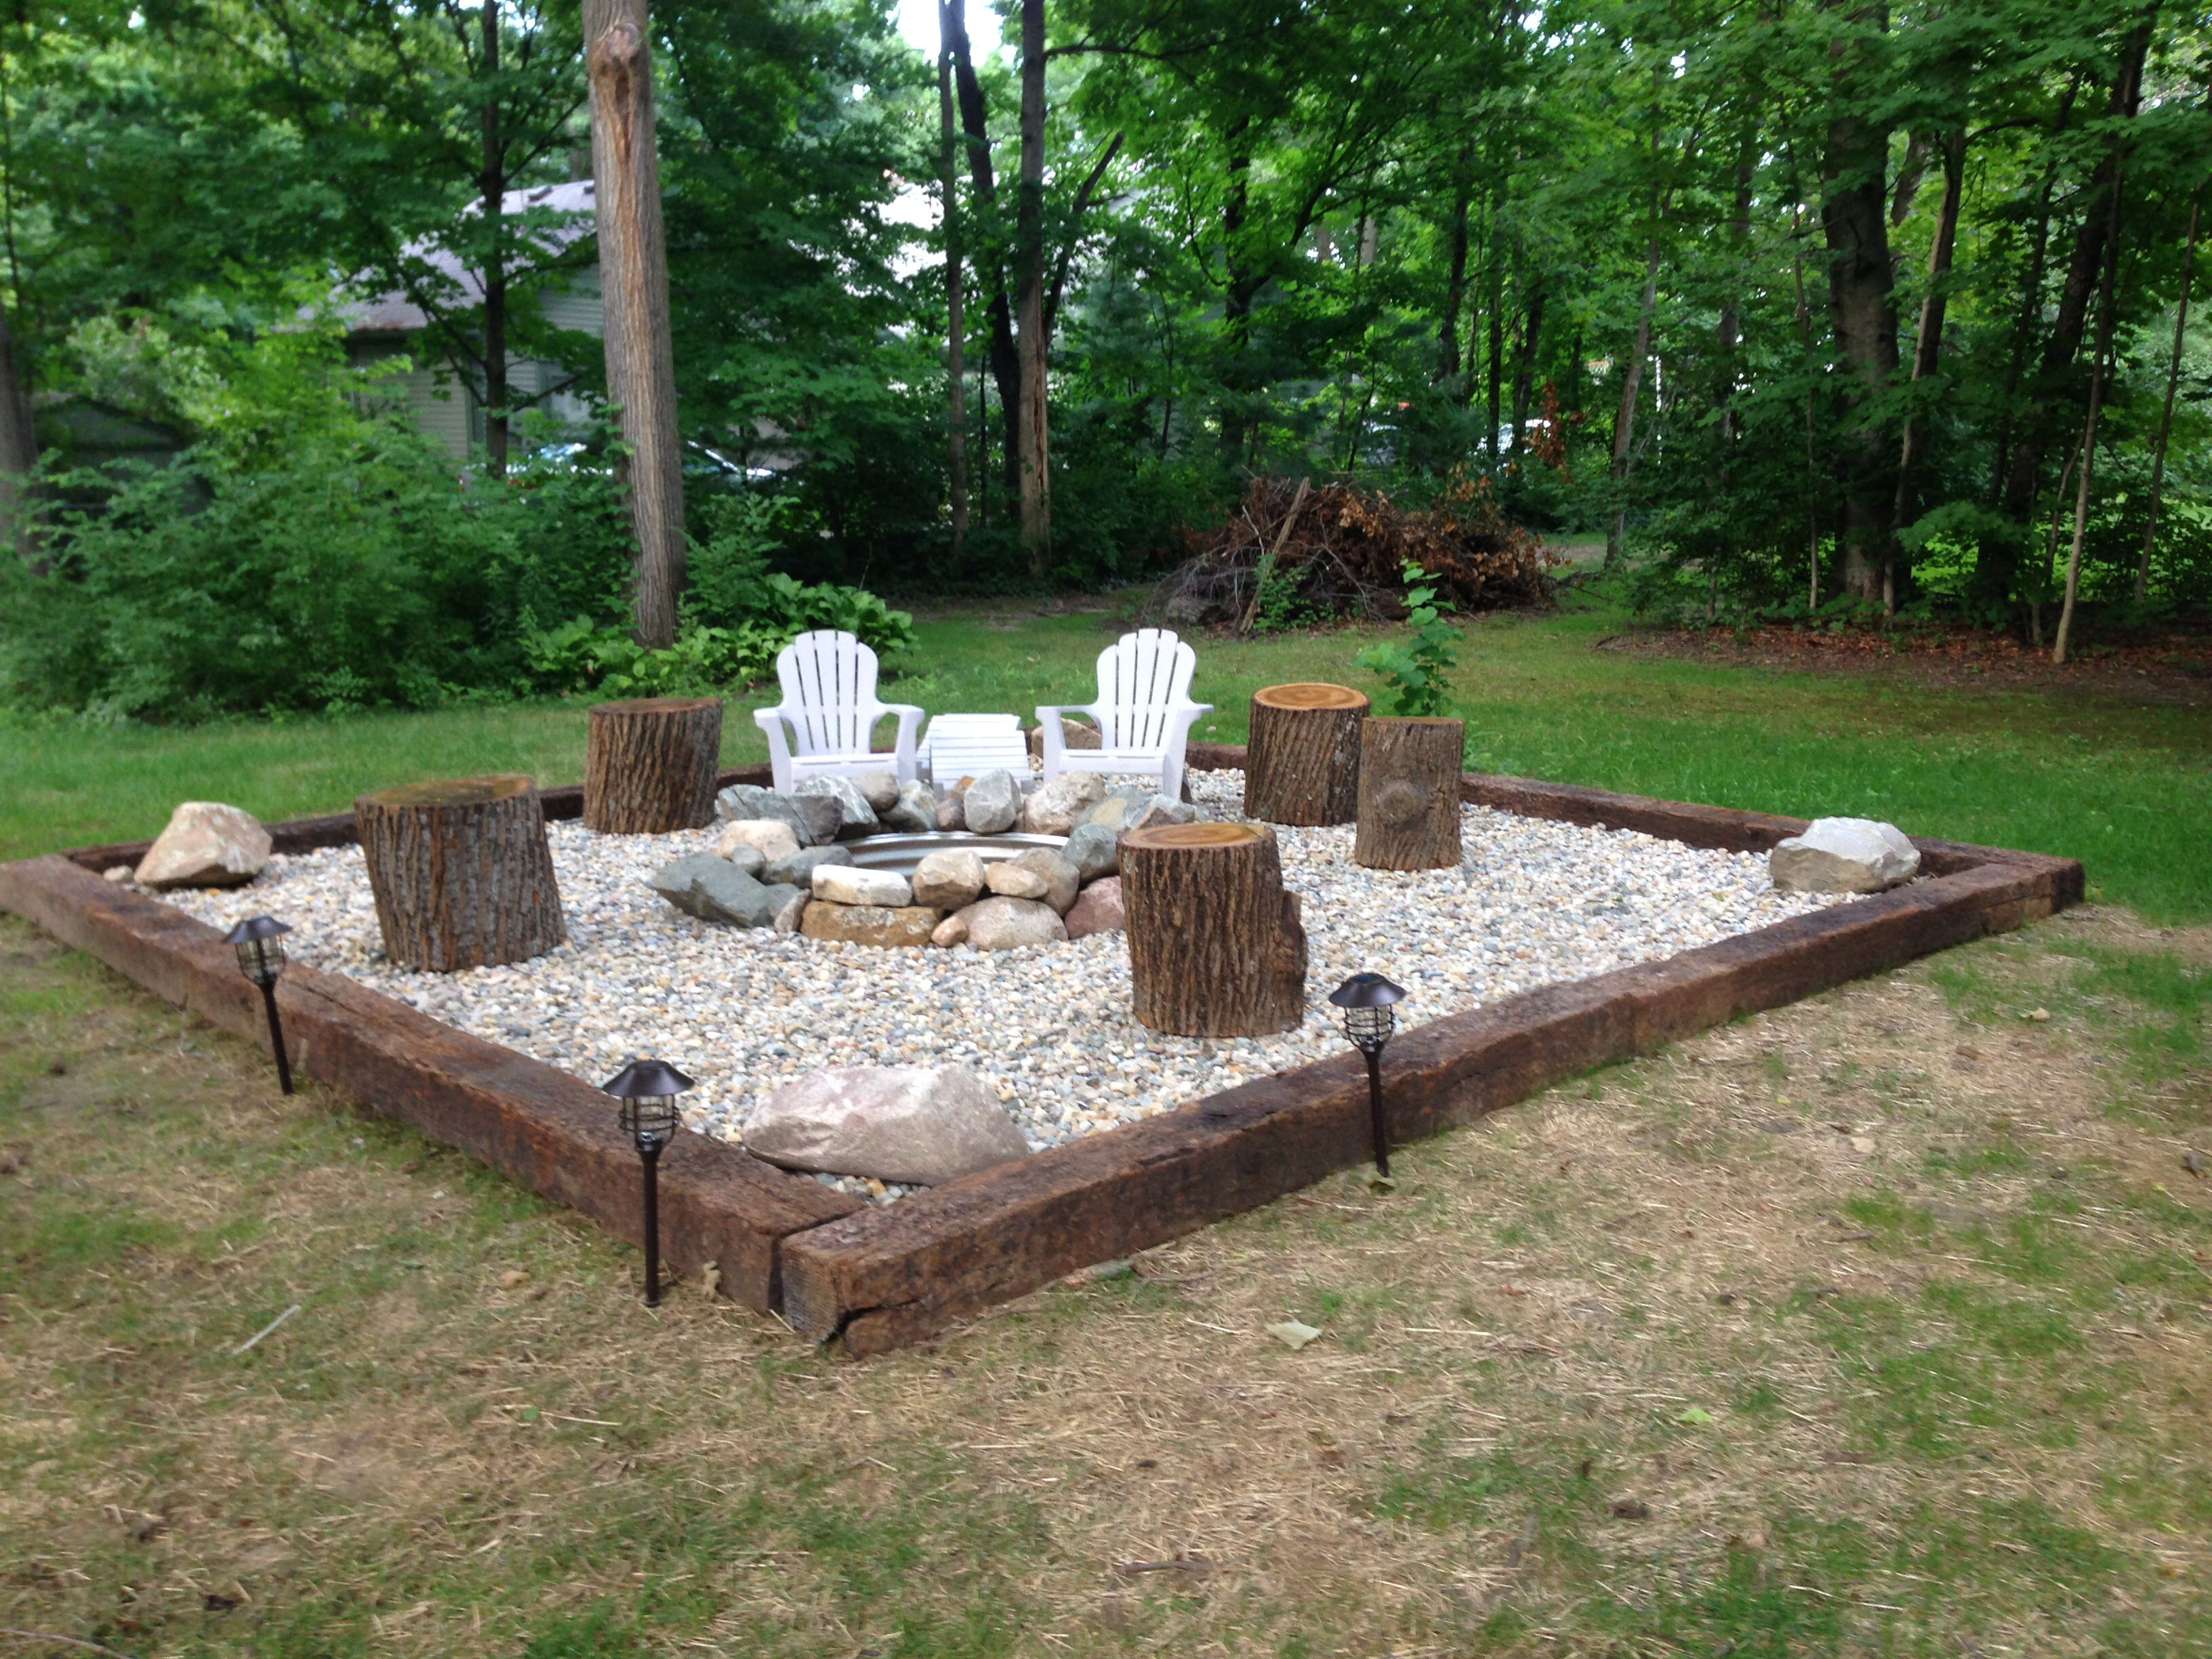 Inspiration for Backyard Fire Pit Designs | Outdoor ...